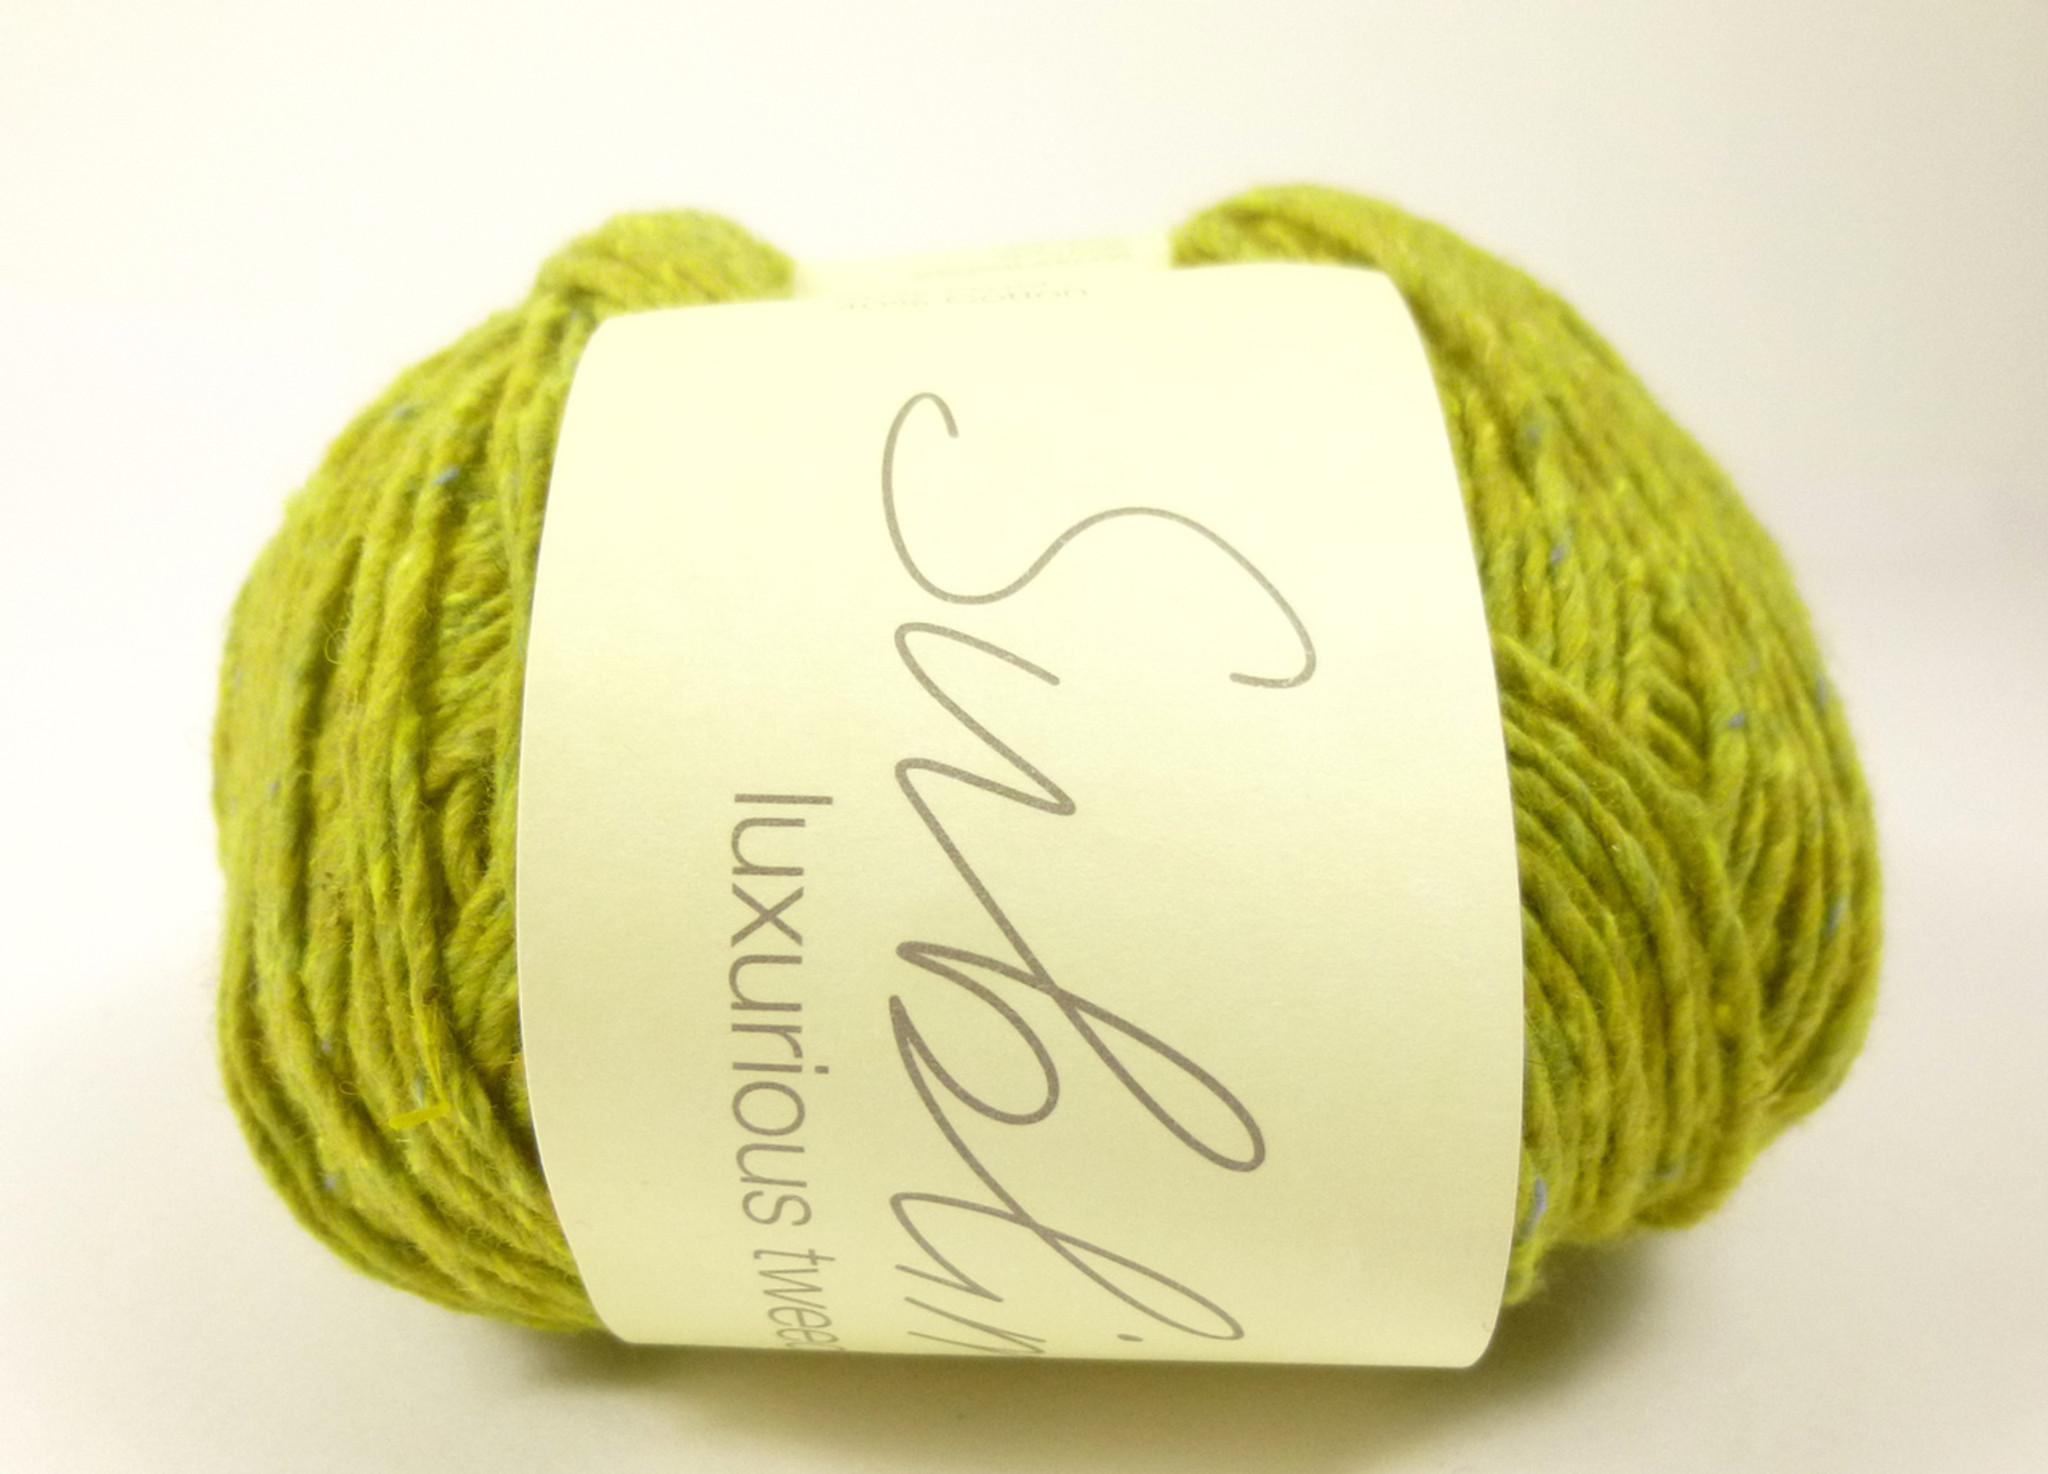 10 x 50g Sublime Luxurious Tweed Double Knit Wool//Yarn for Knitting//Crochet